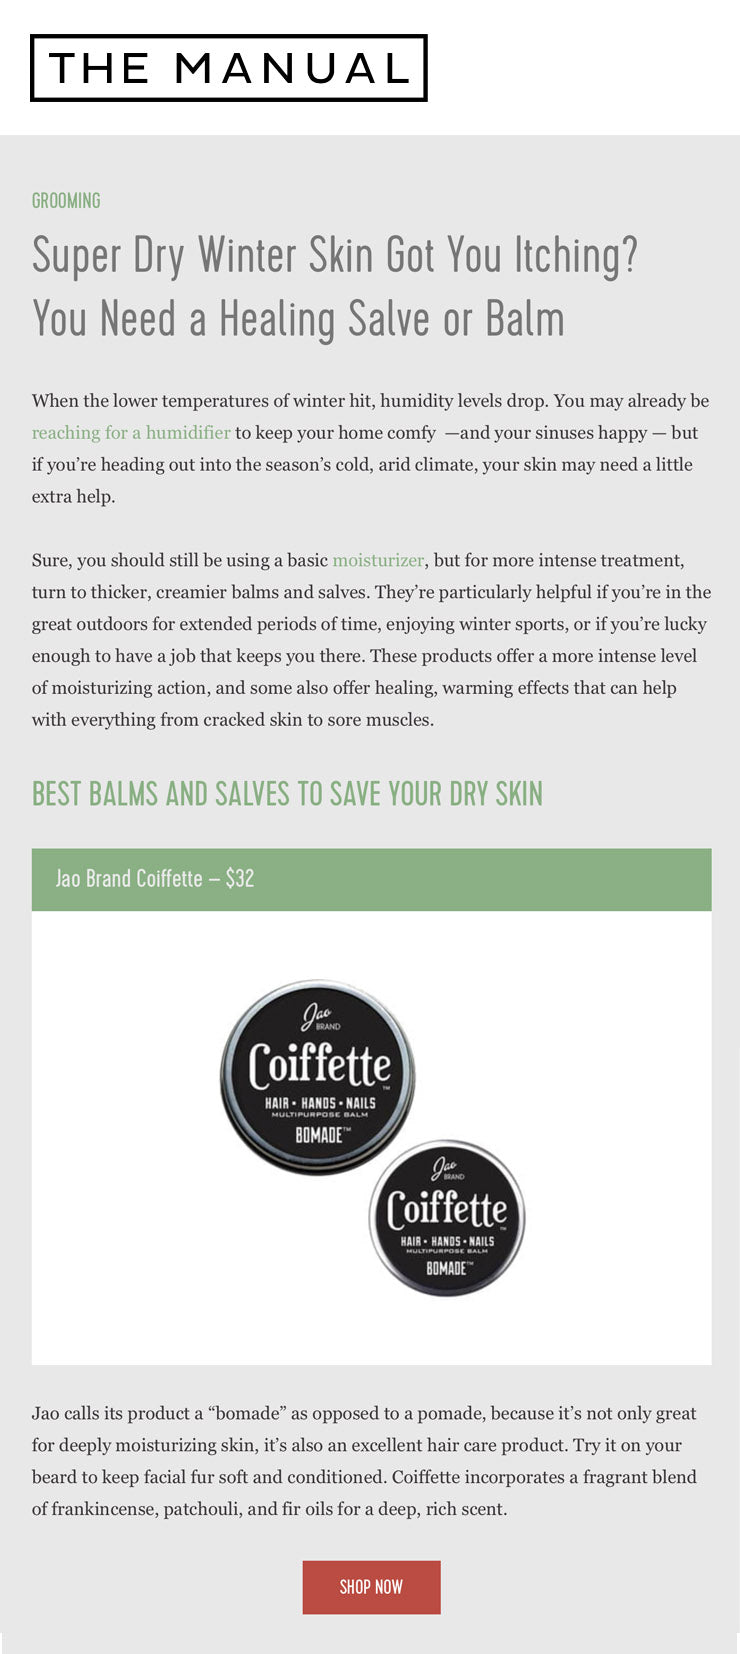 The Manual: Coiffette for Super Dry Winter Skin, A Healing Salve